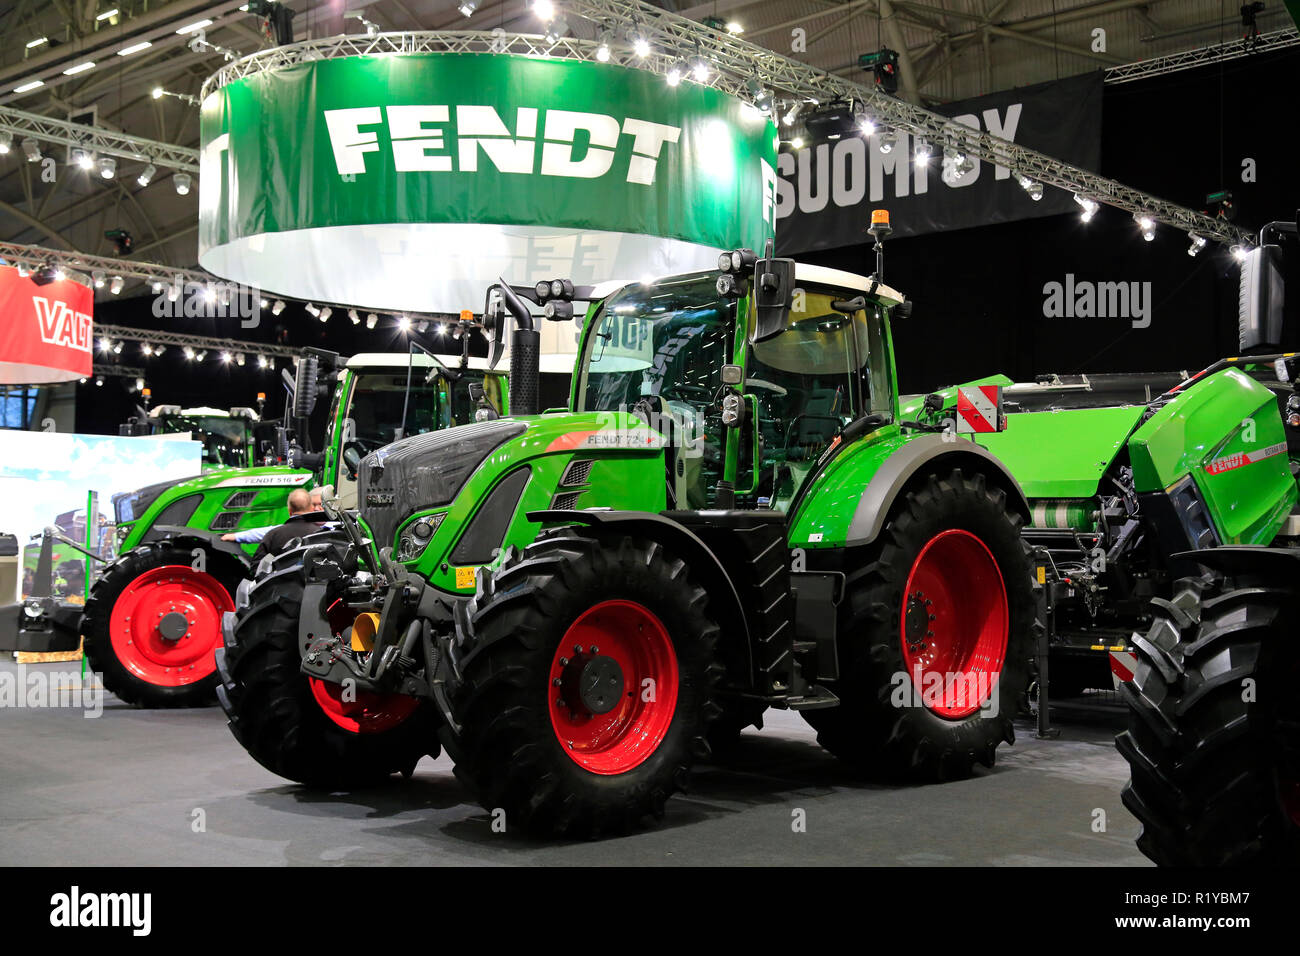 Helsinki, Finland - November 15, 2018: Fendt 724 Vario tractor displayed on  Agco Finland stand on MaatalousKonemessut Agricultural Trade Fair,  Helsinki, ...